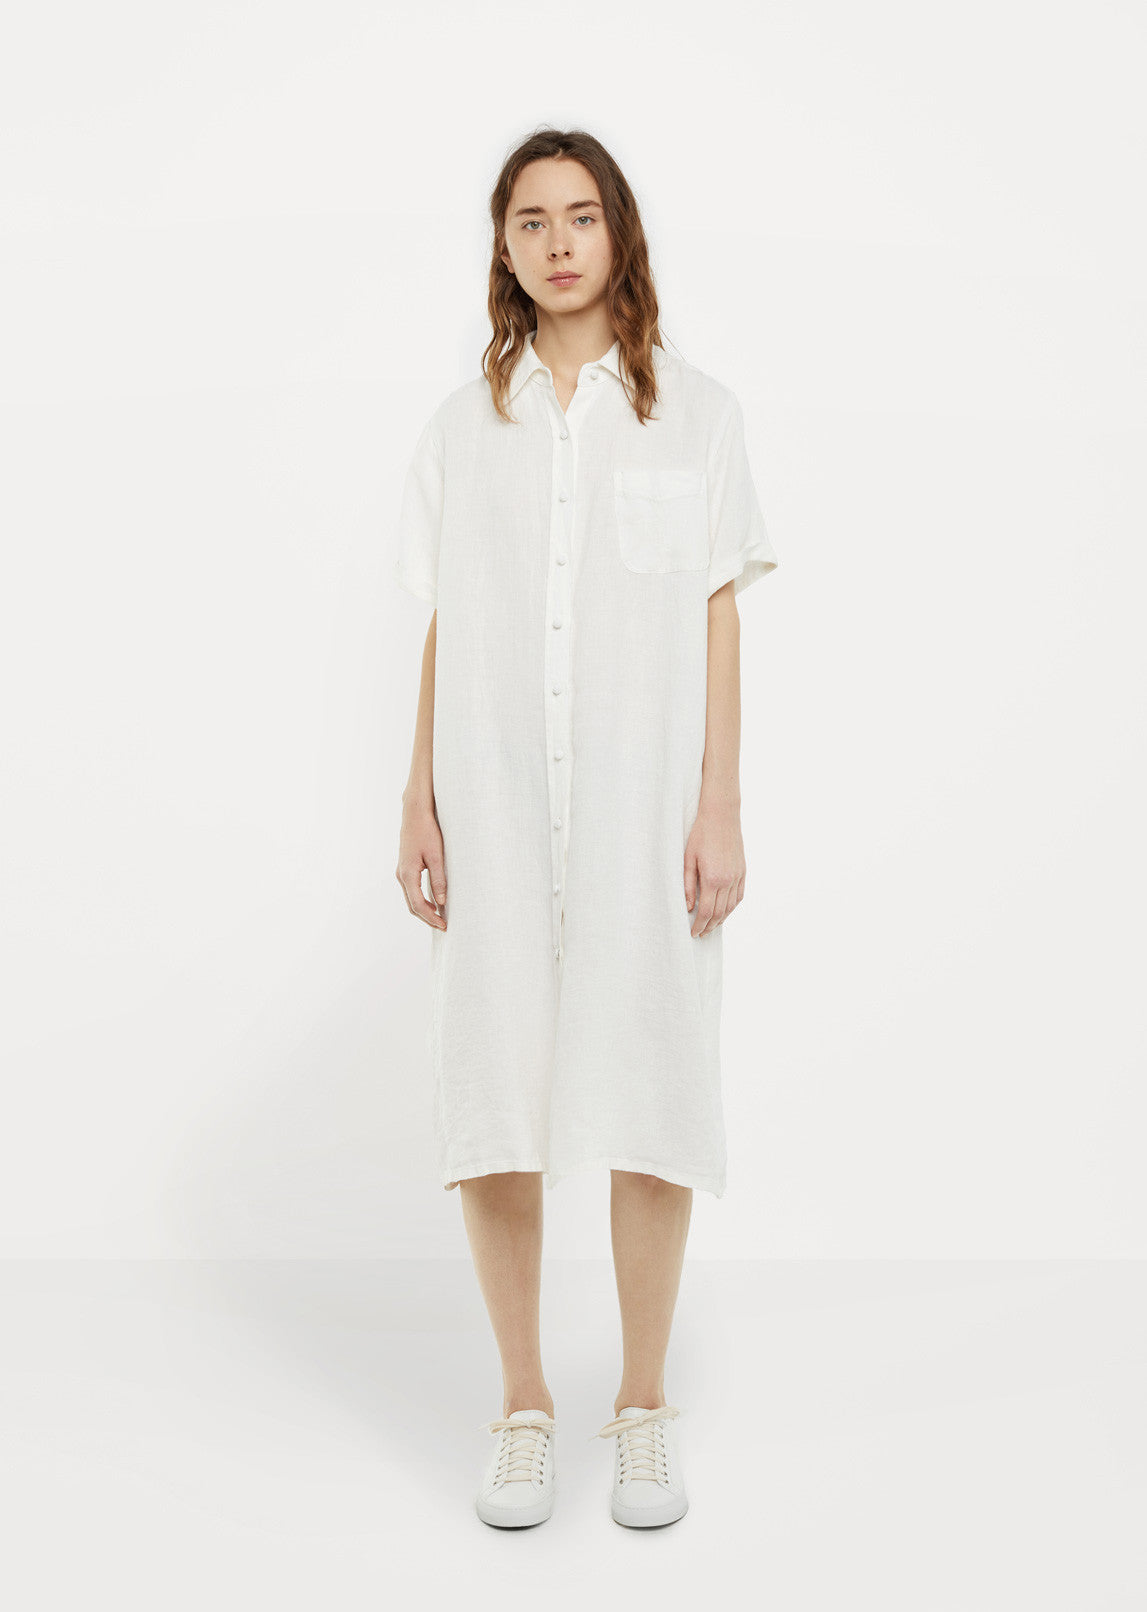 Linen Shirt Dress By La Garonne Moderne La Garonne